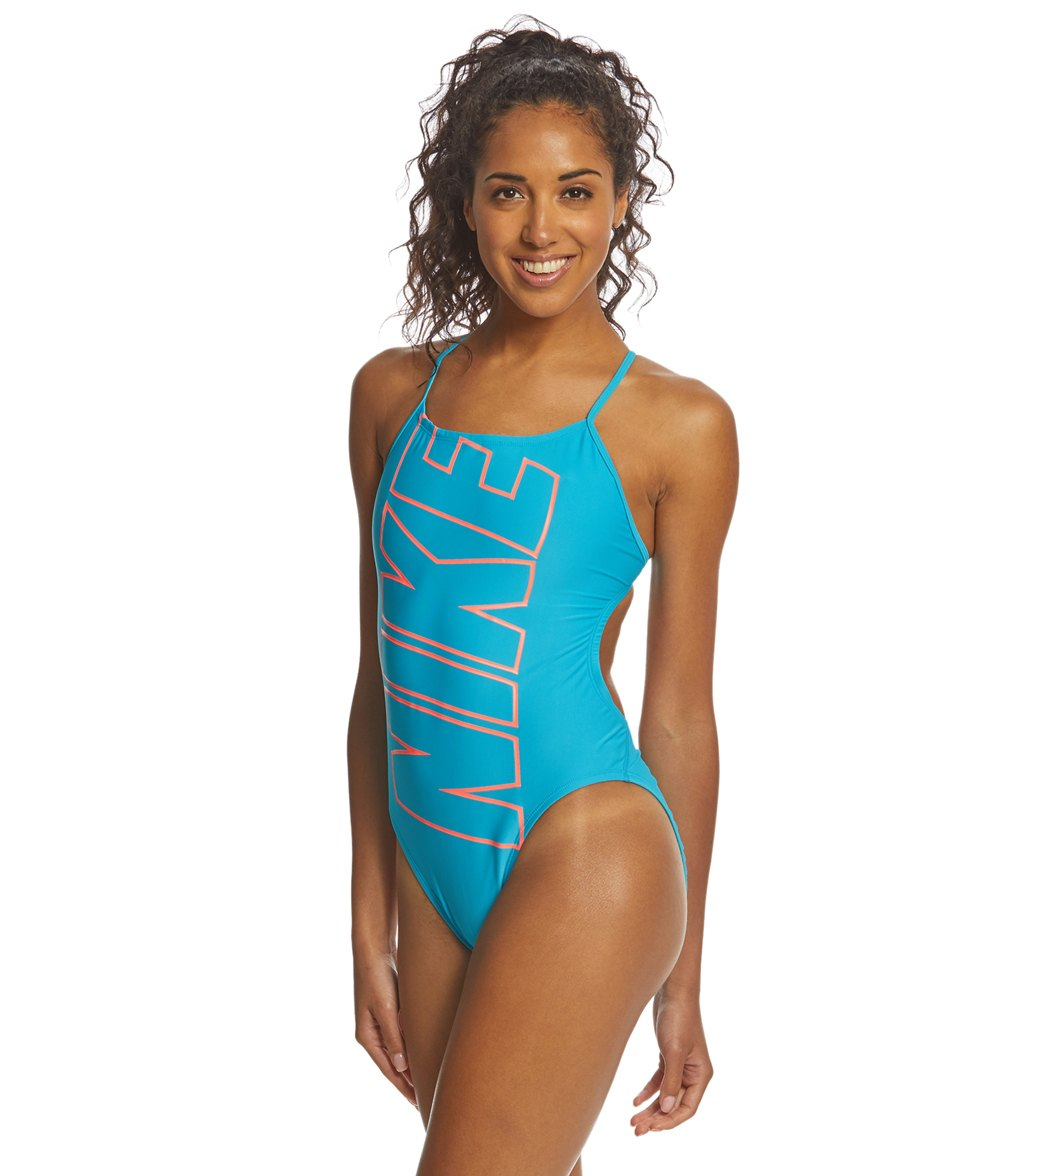 b8eba5e7c93 Nike Women's Nike Logo Cut Out One Piece Swimsuit